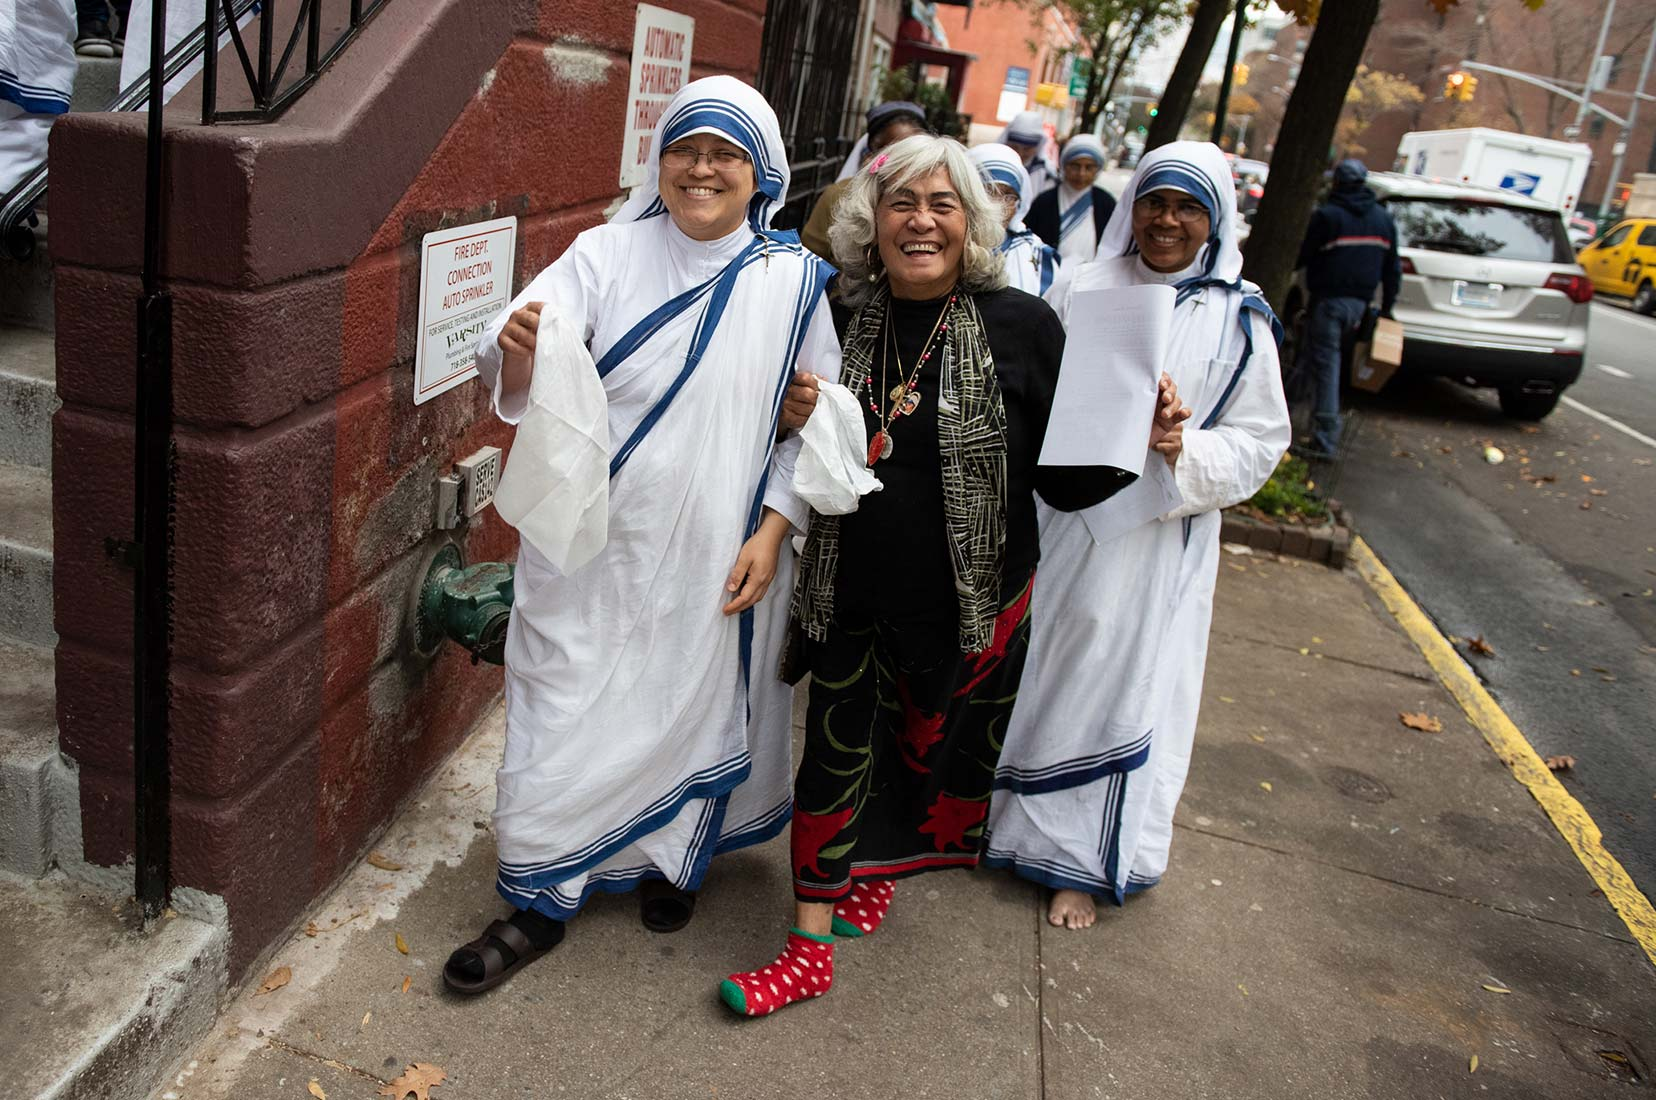 MISSIONARIES OF CHARITY,NEW YORK CITY